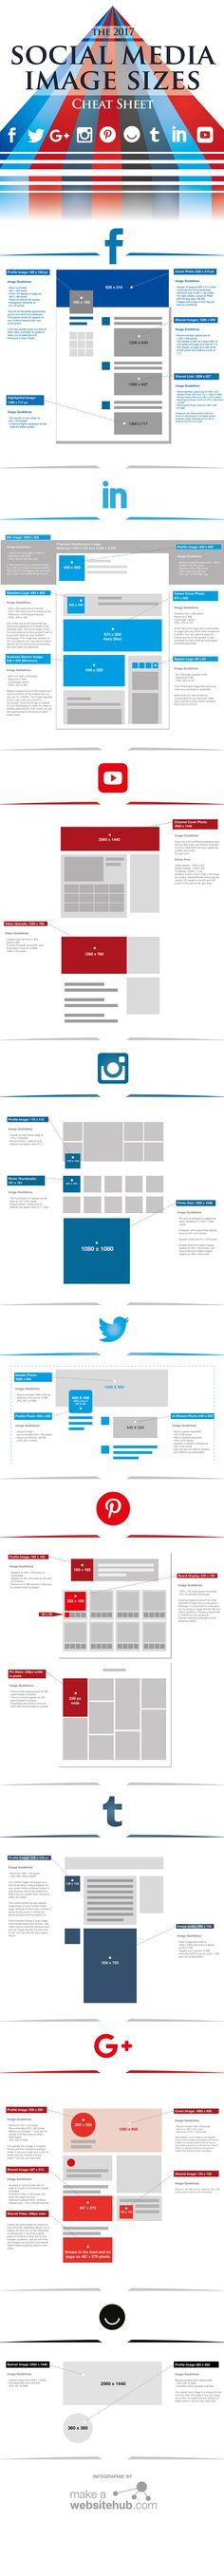 The 2017 Social Media Image Sizes Cheat Sheet #Infographic #SocialMedia